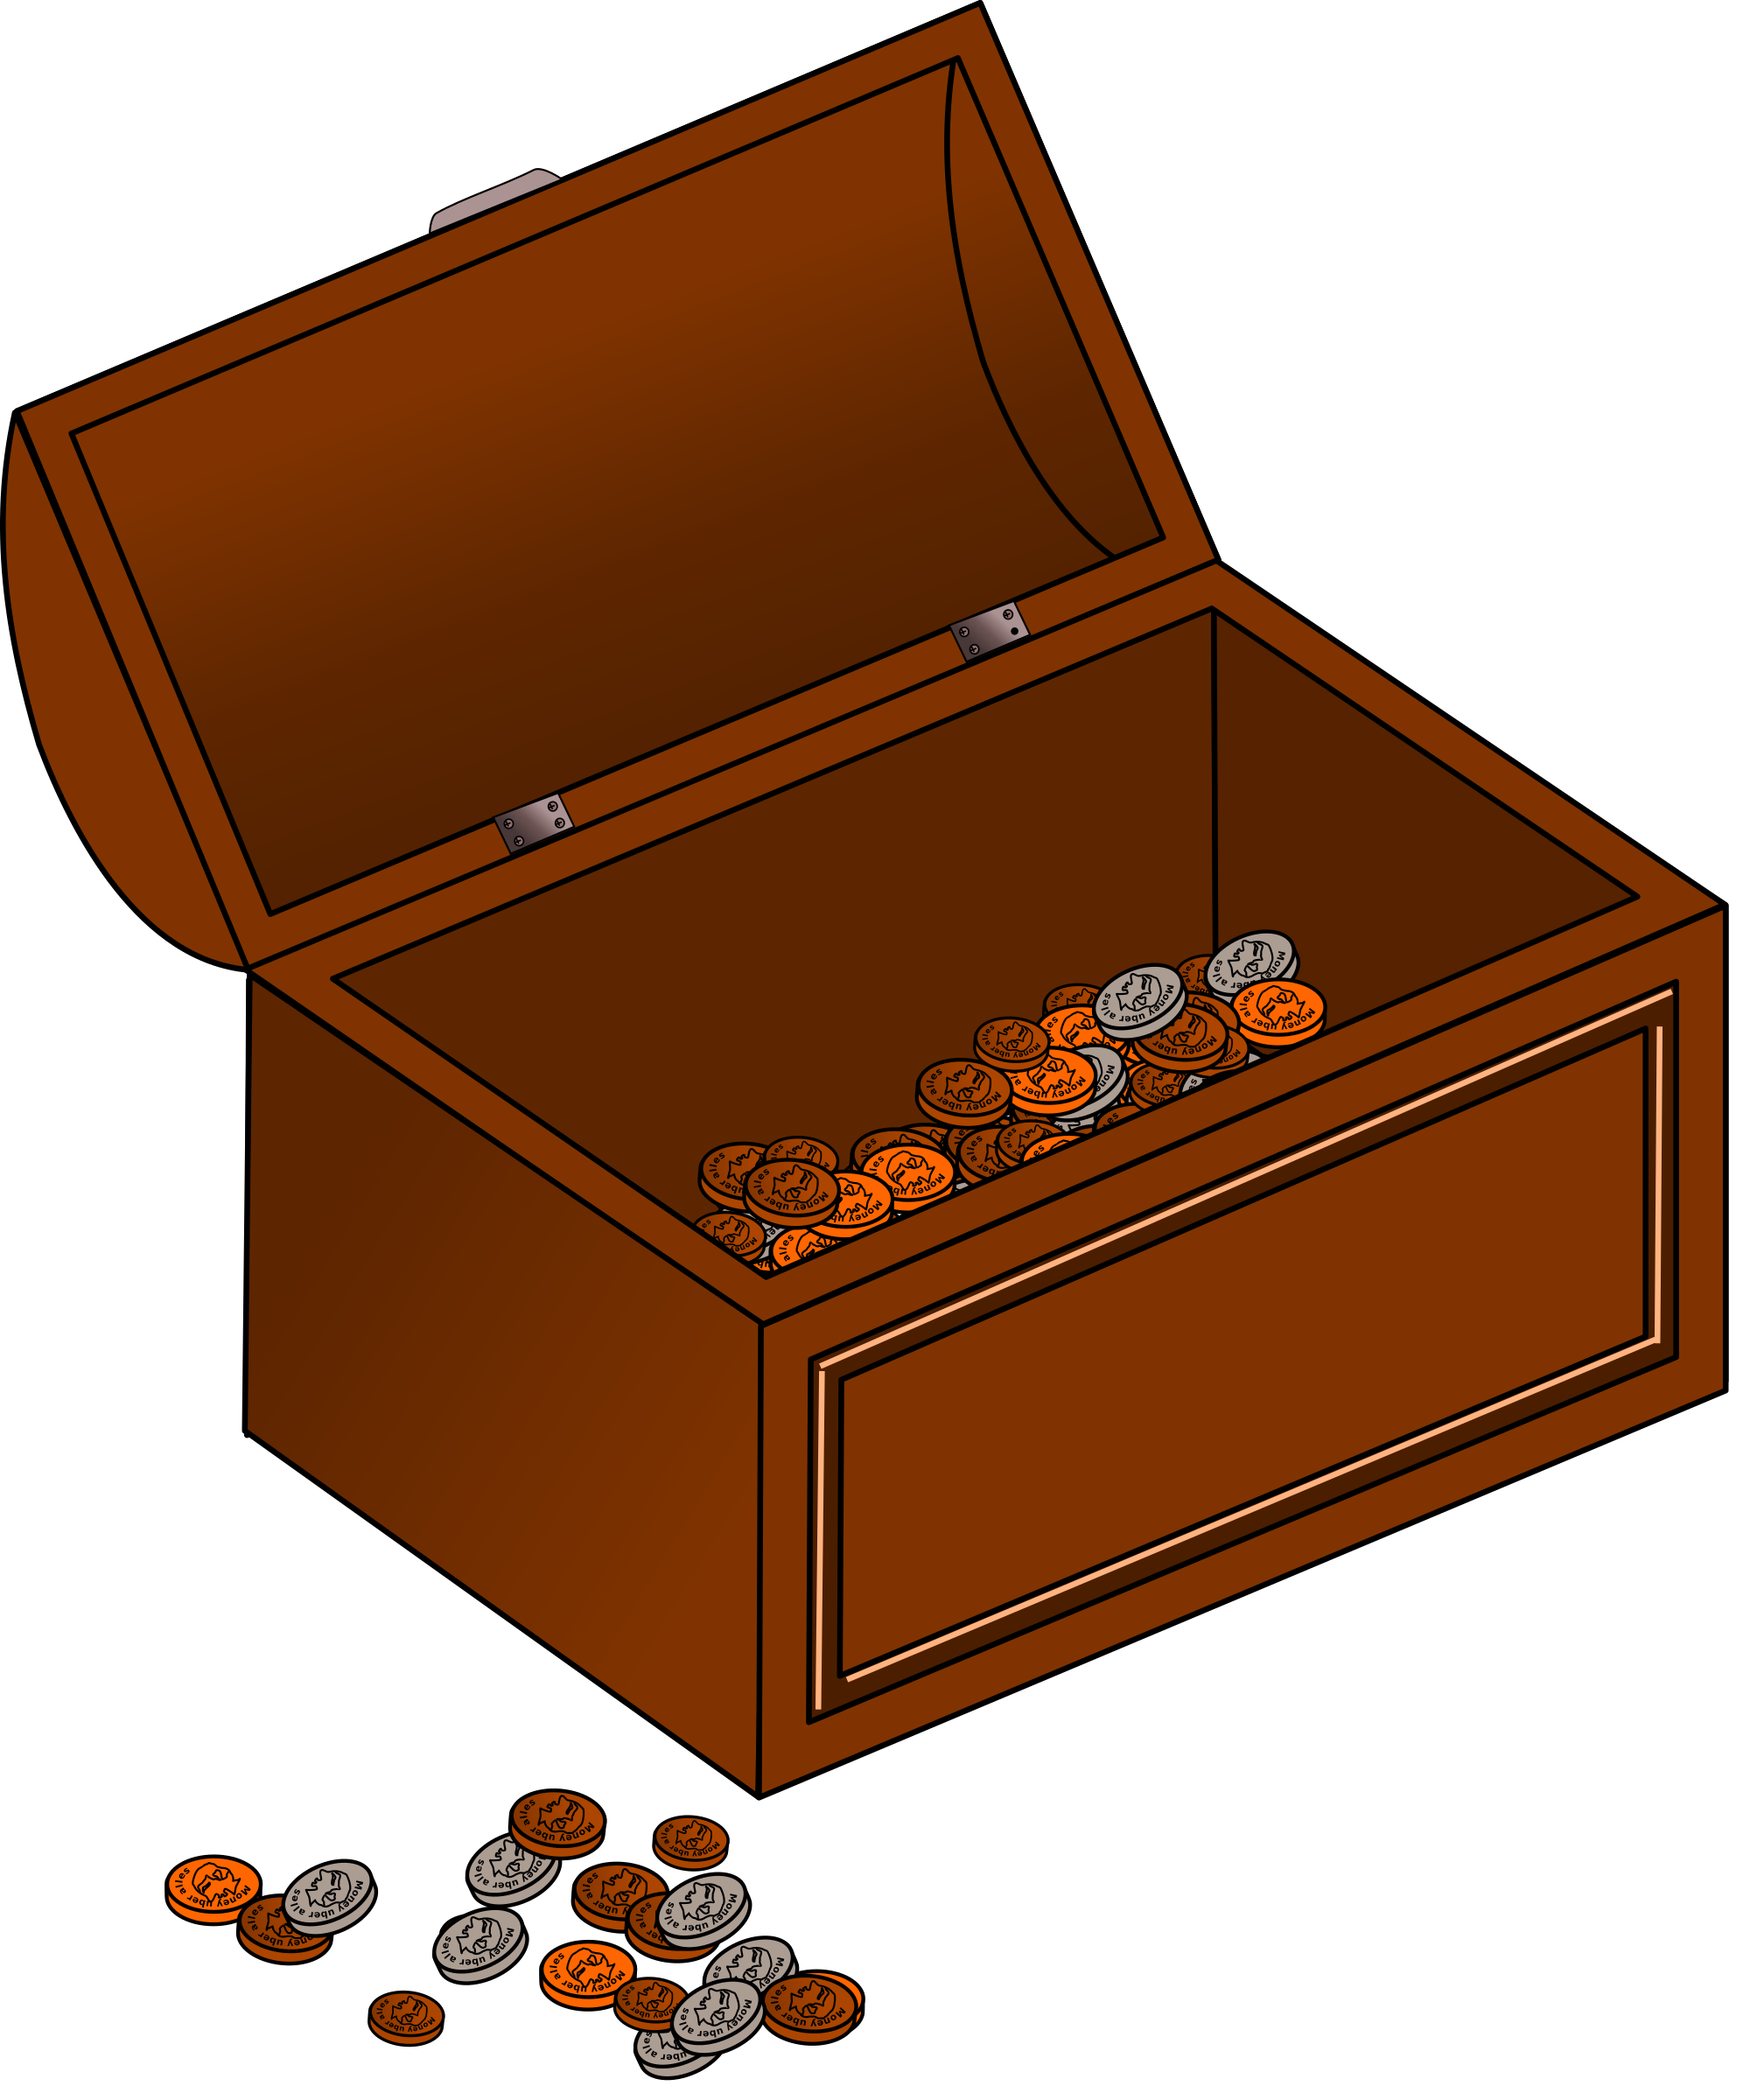 Treasure chest by Eypros